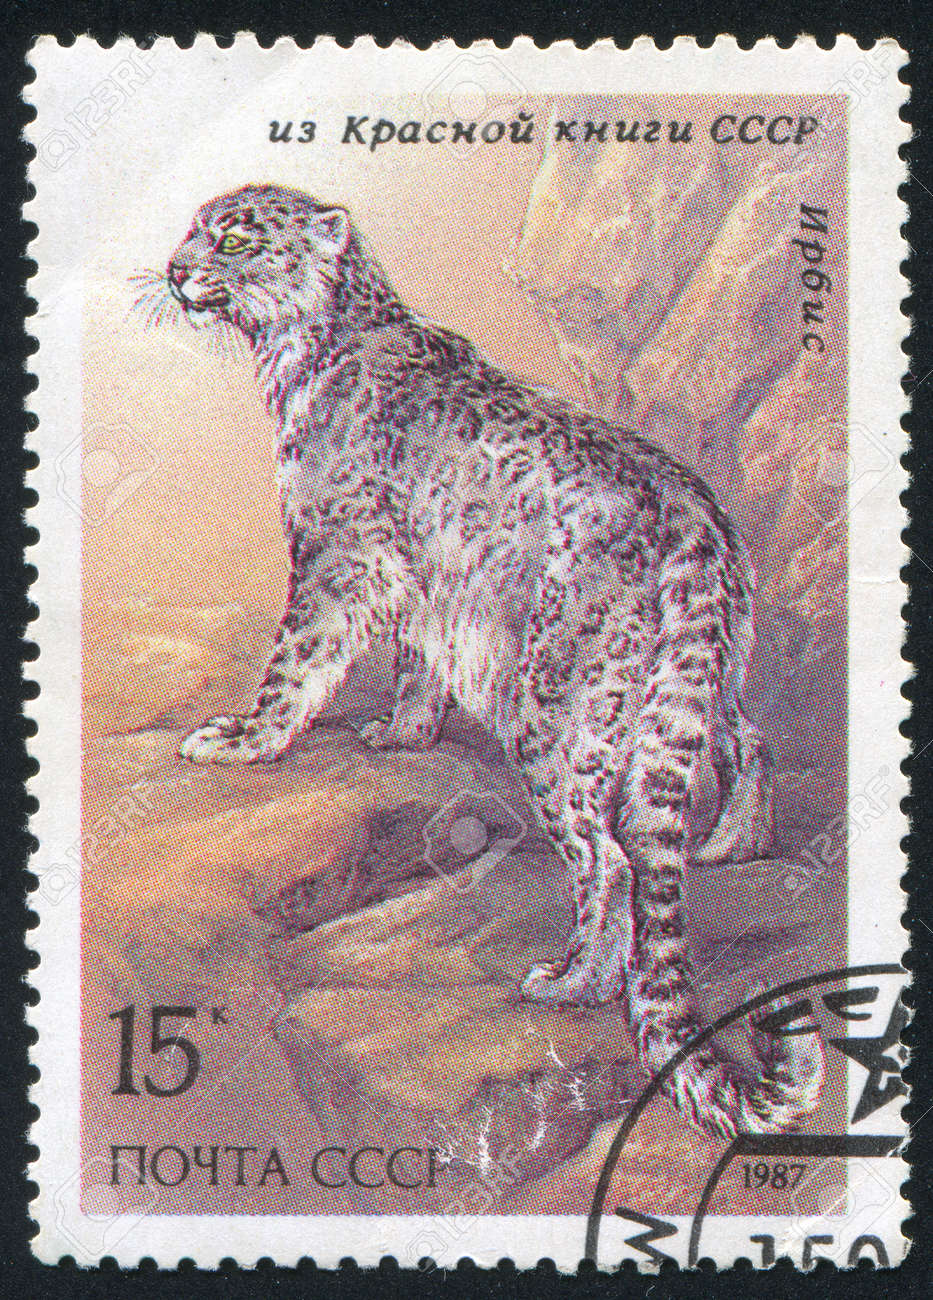 RUSSIA - CIRCA 1987: stamp printed by Russia, shows Snow leopard, circa 1987 Stock Photo - 13591760